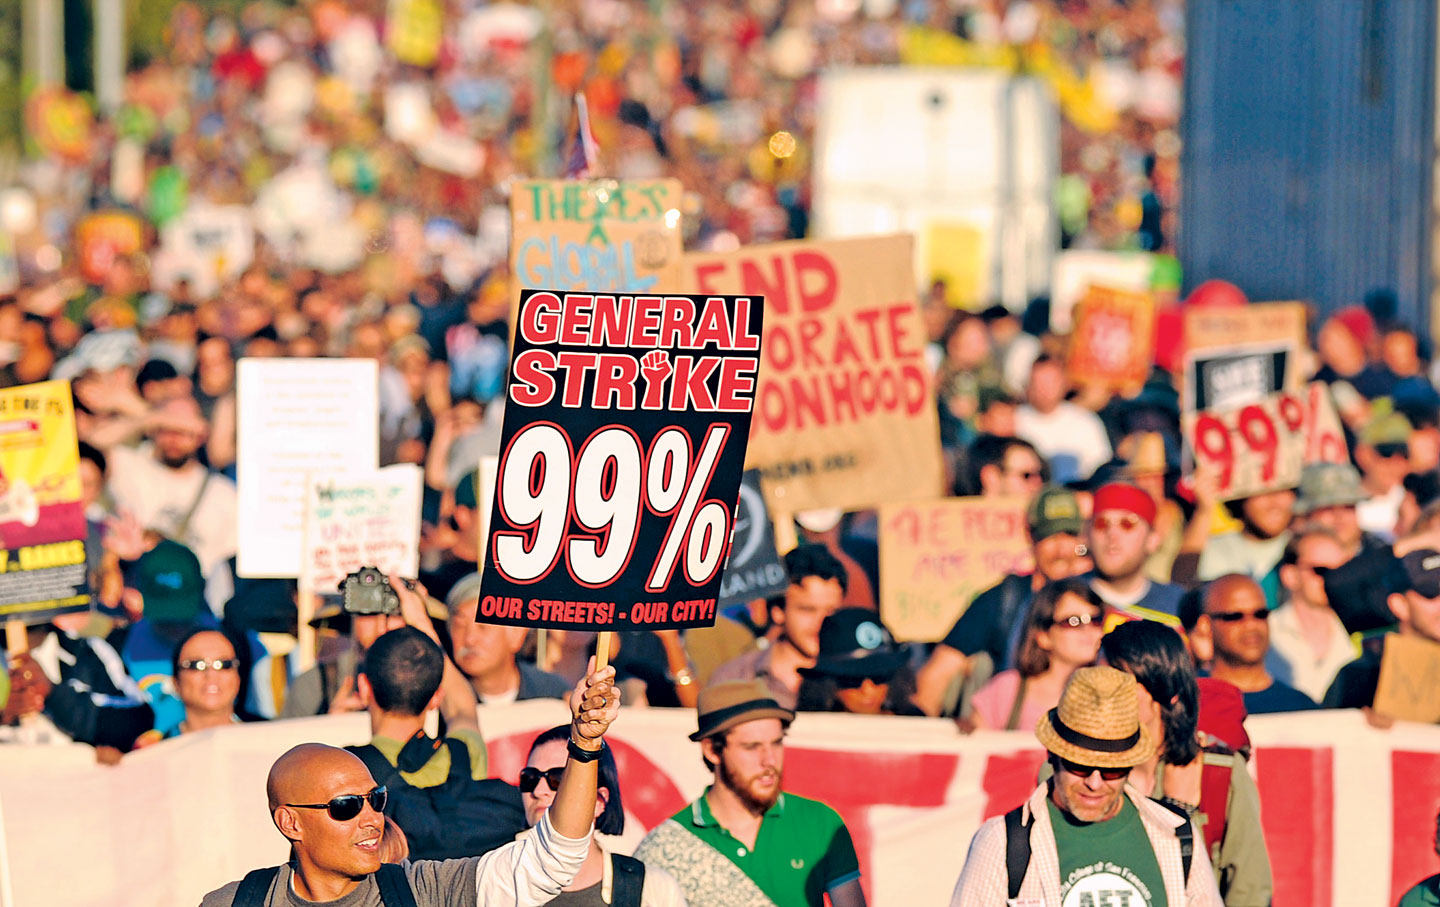 The Making of the 99%